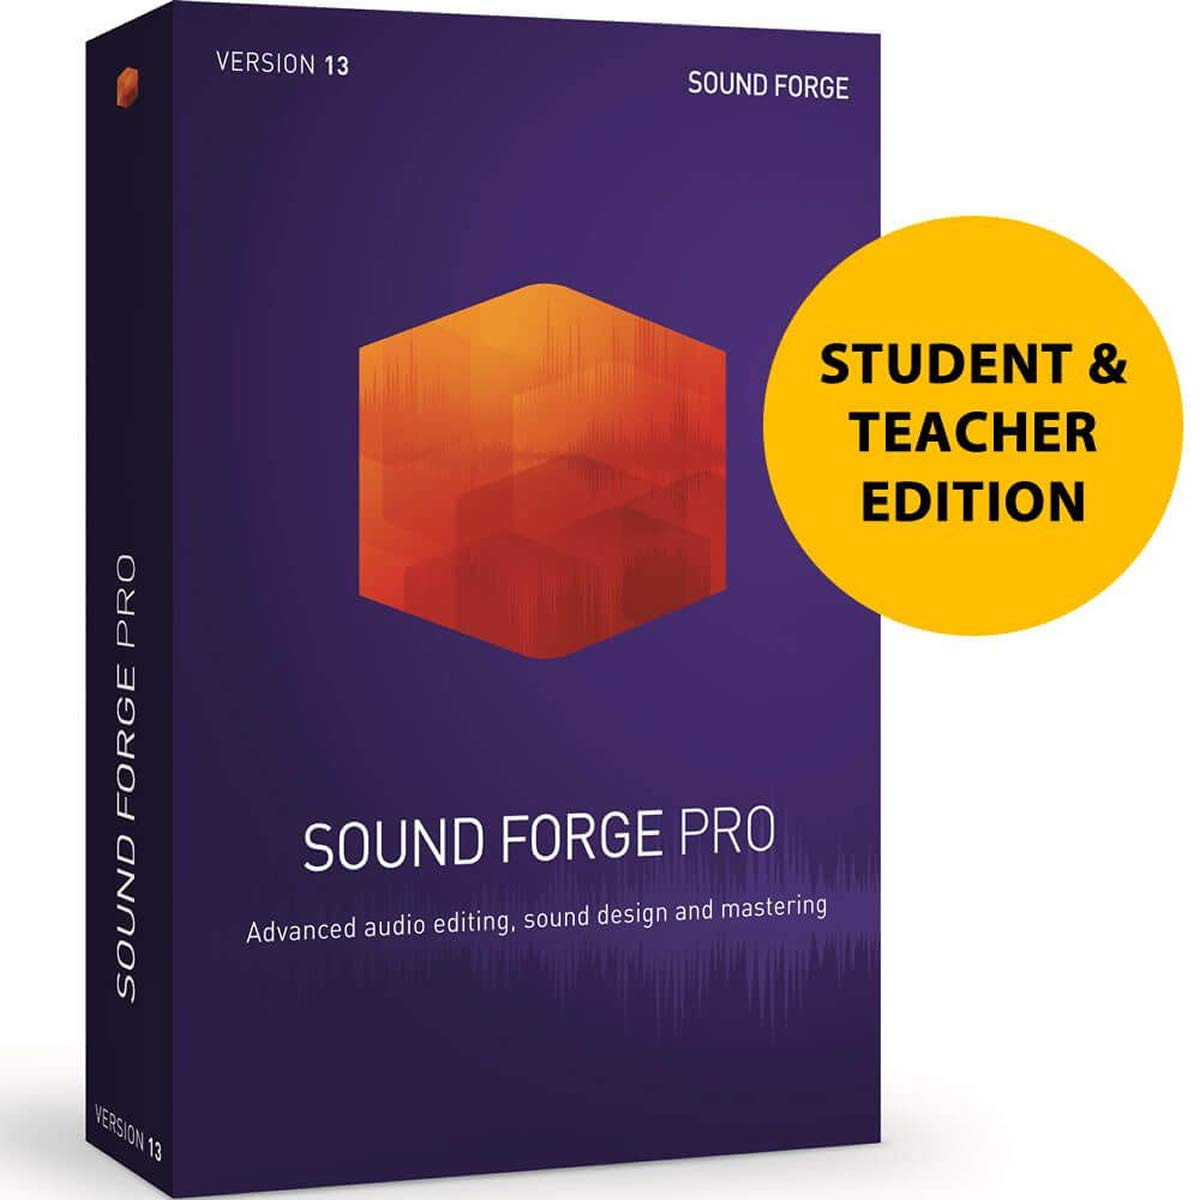 MAGIX Sound Forge Pro 13 for Students and Teachers - Audio Editing, Recording, Restoration and Mastering by Magix-Genesis